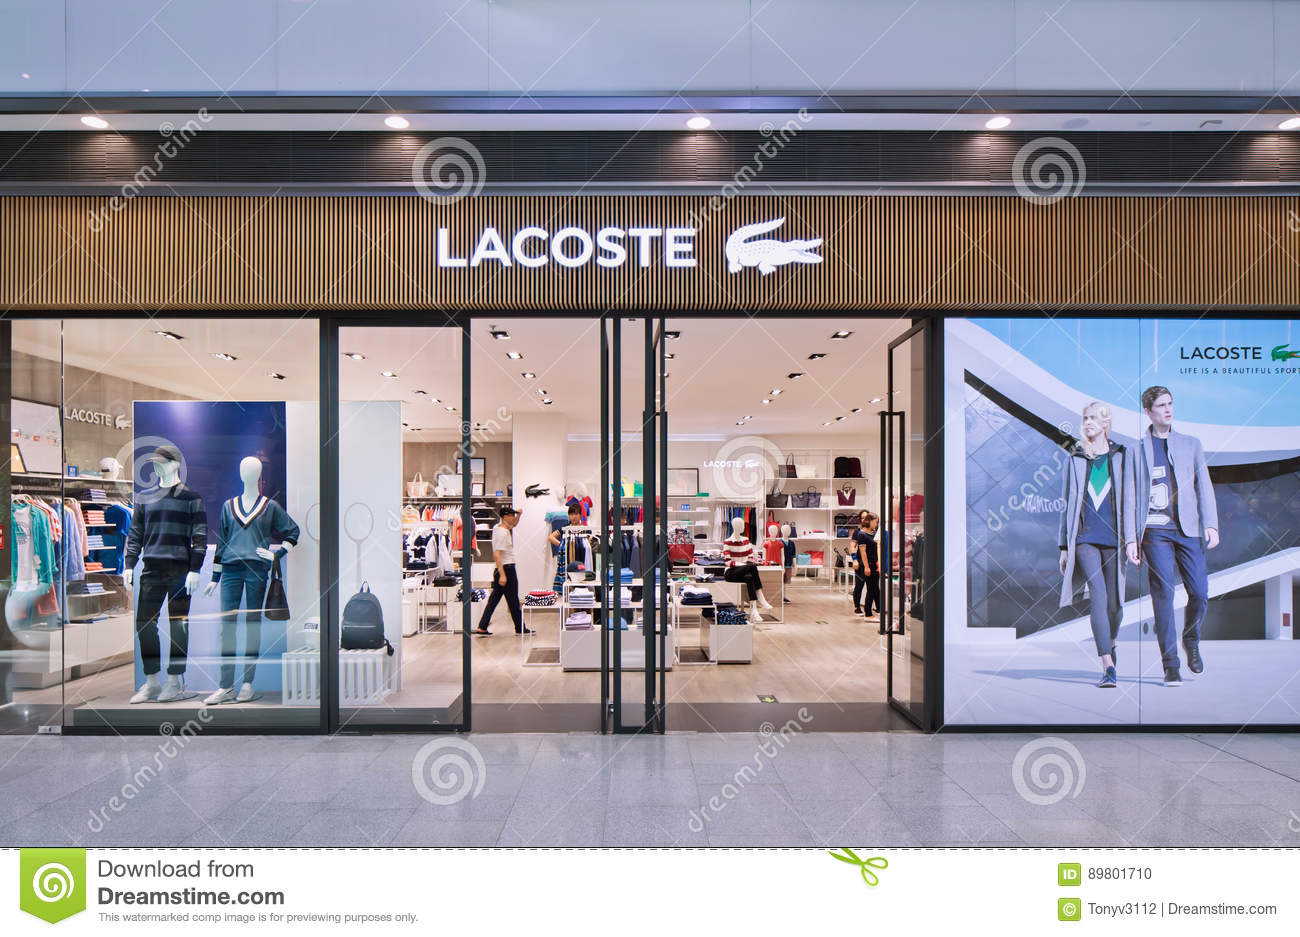 7420ef588 Lacoste outlet. Lacoste is a French clothing company founded in 1933